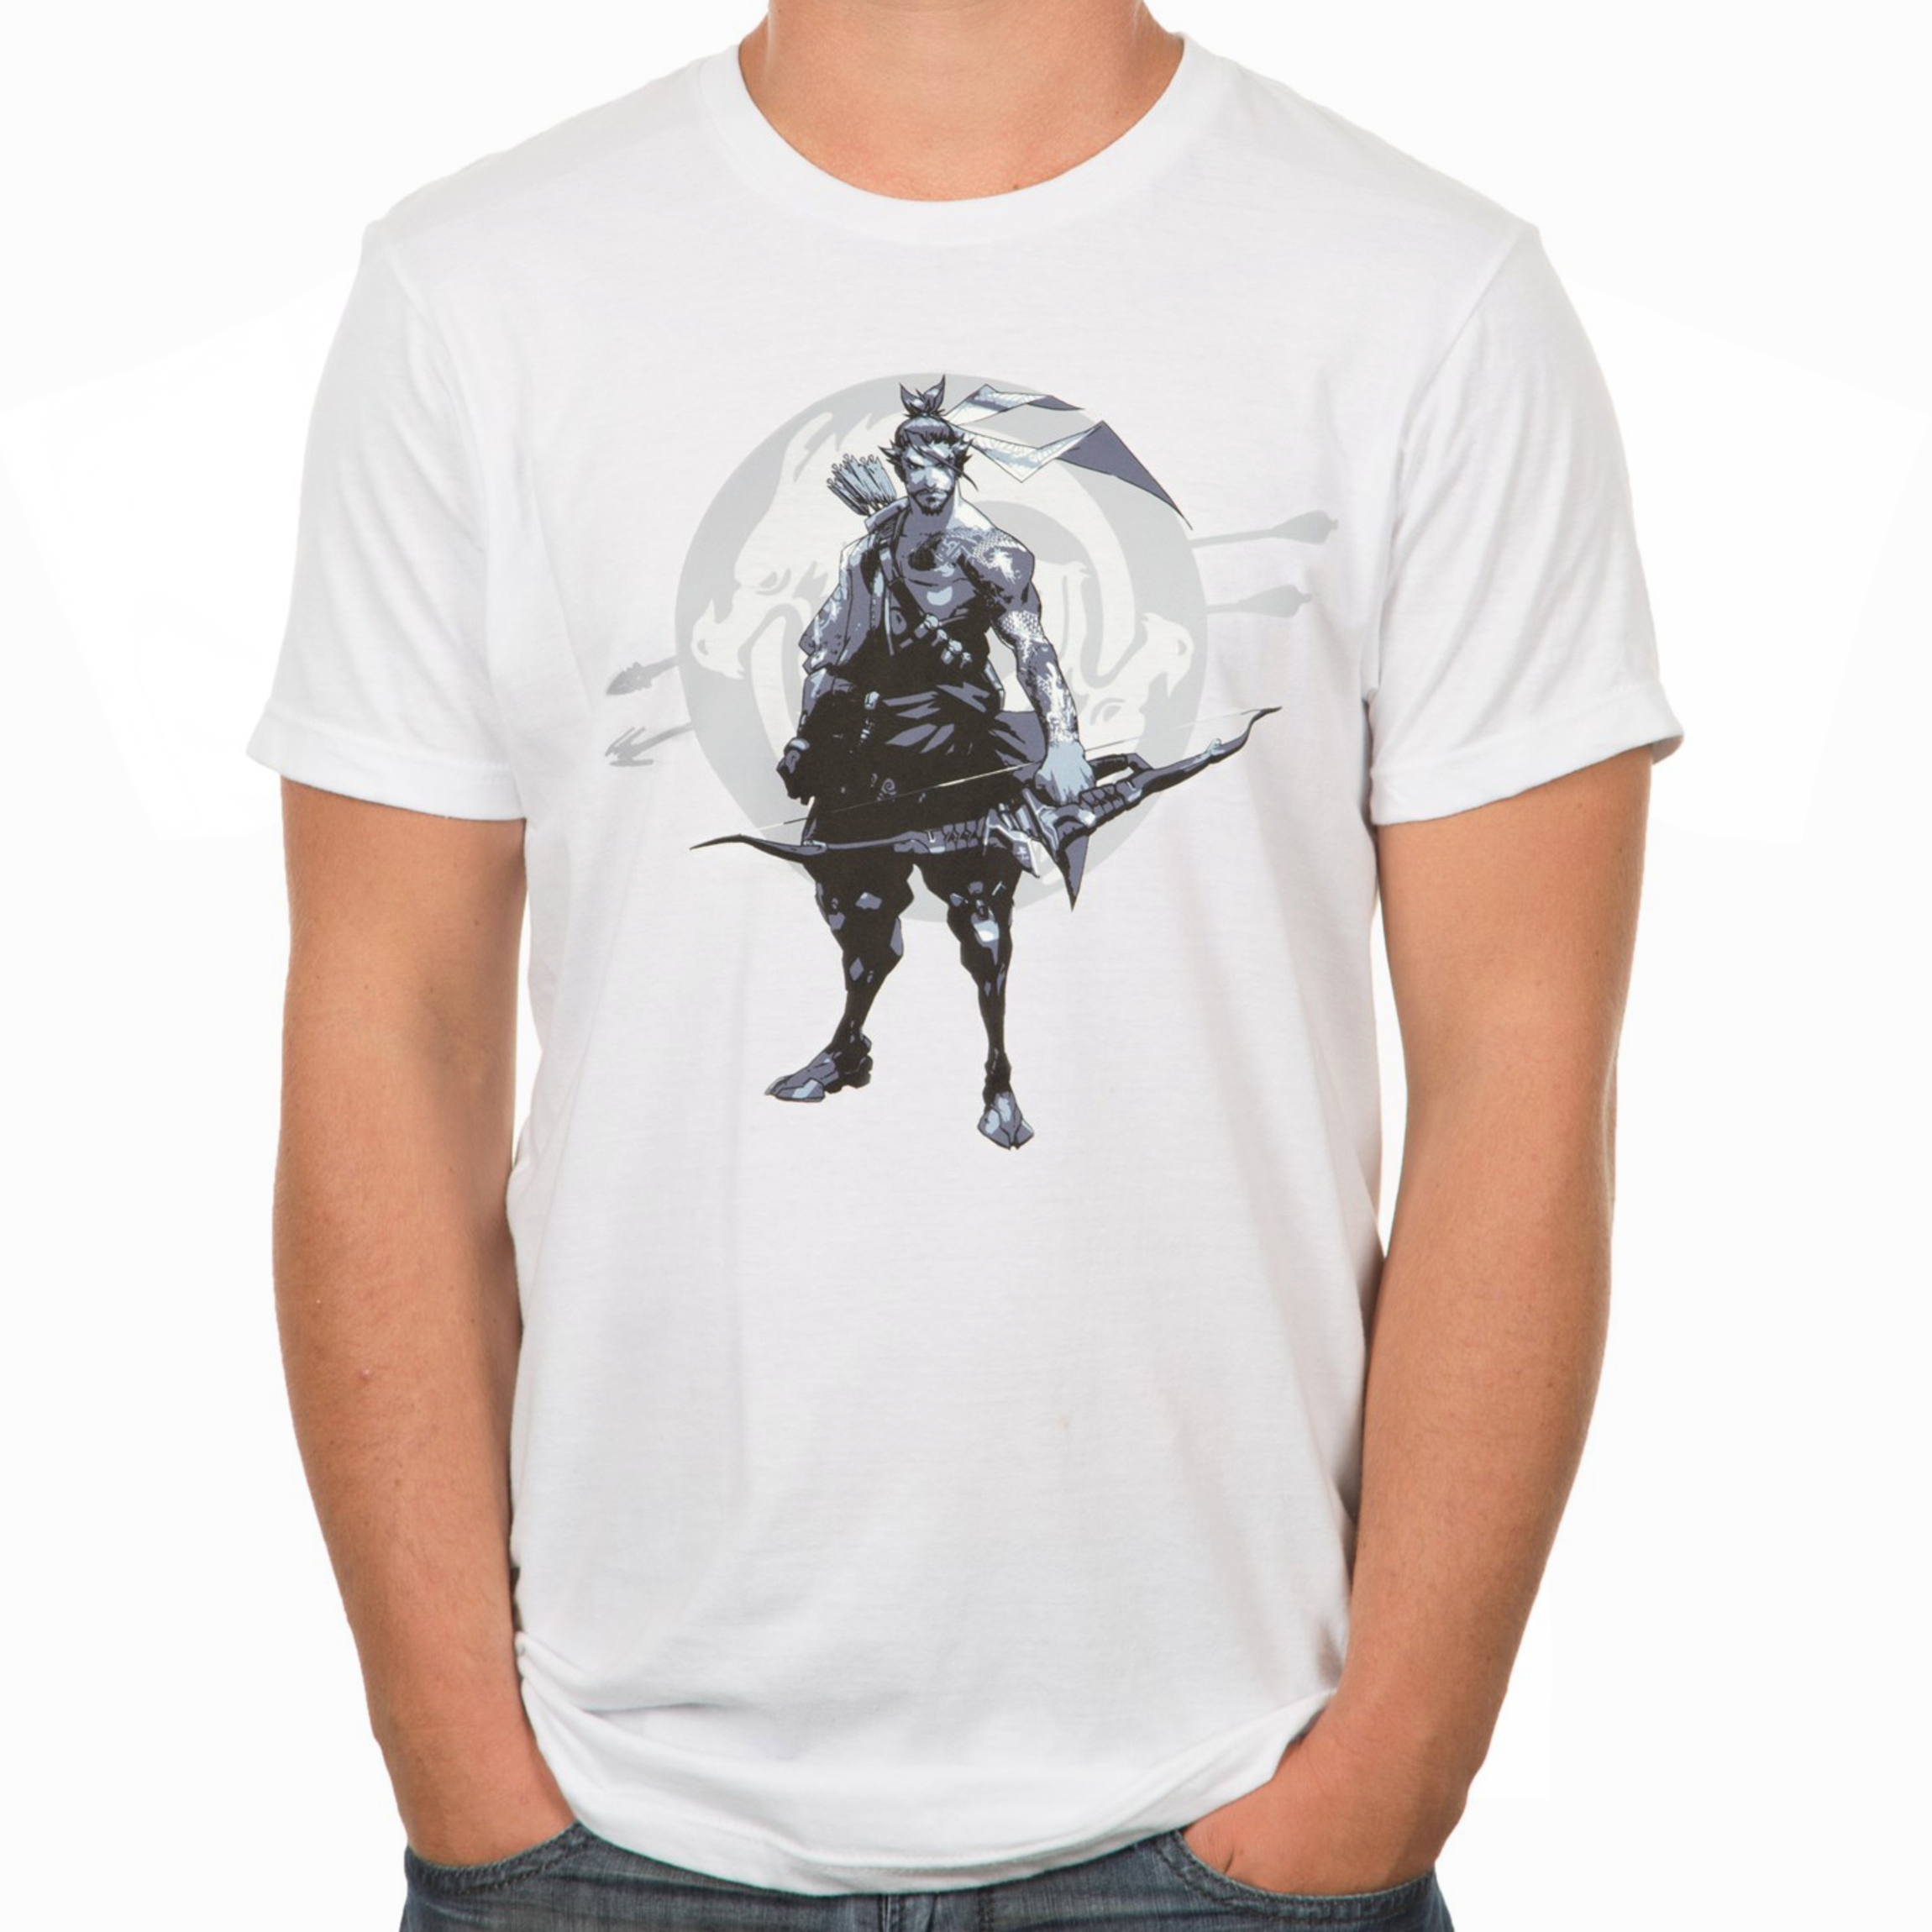 Photograph: Overwatch Redemption Through Honour T-Shirt